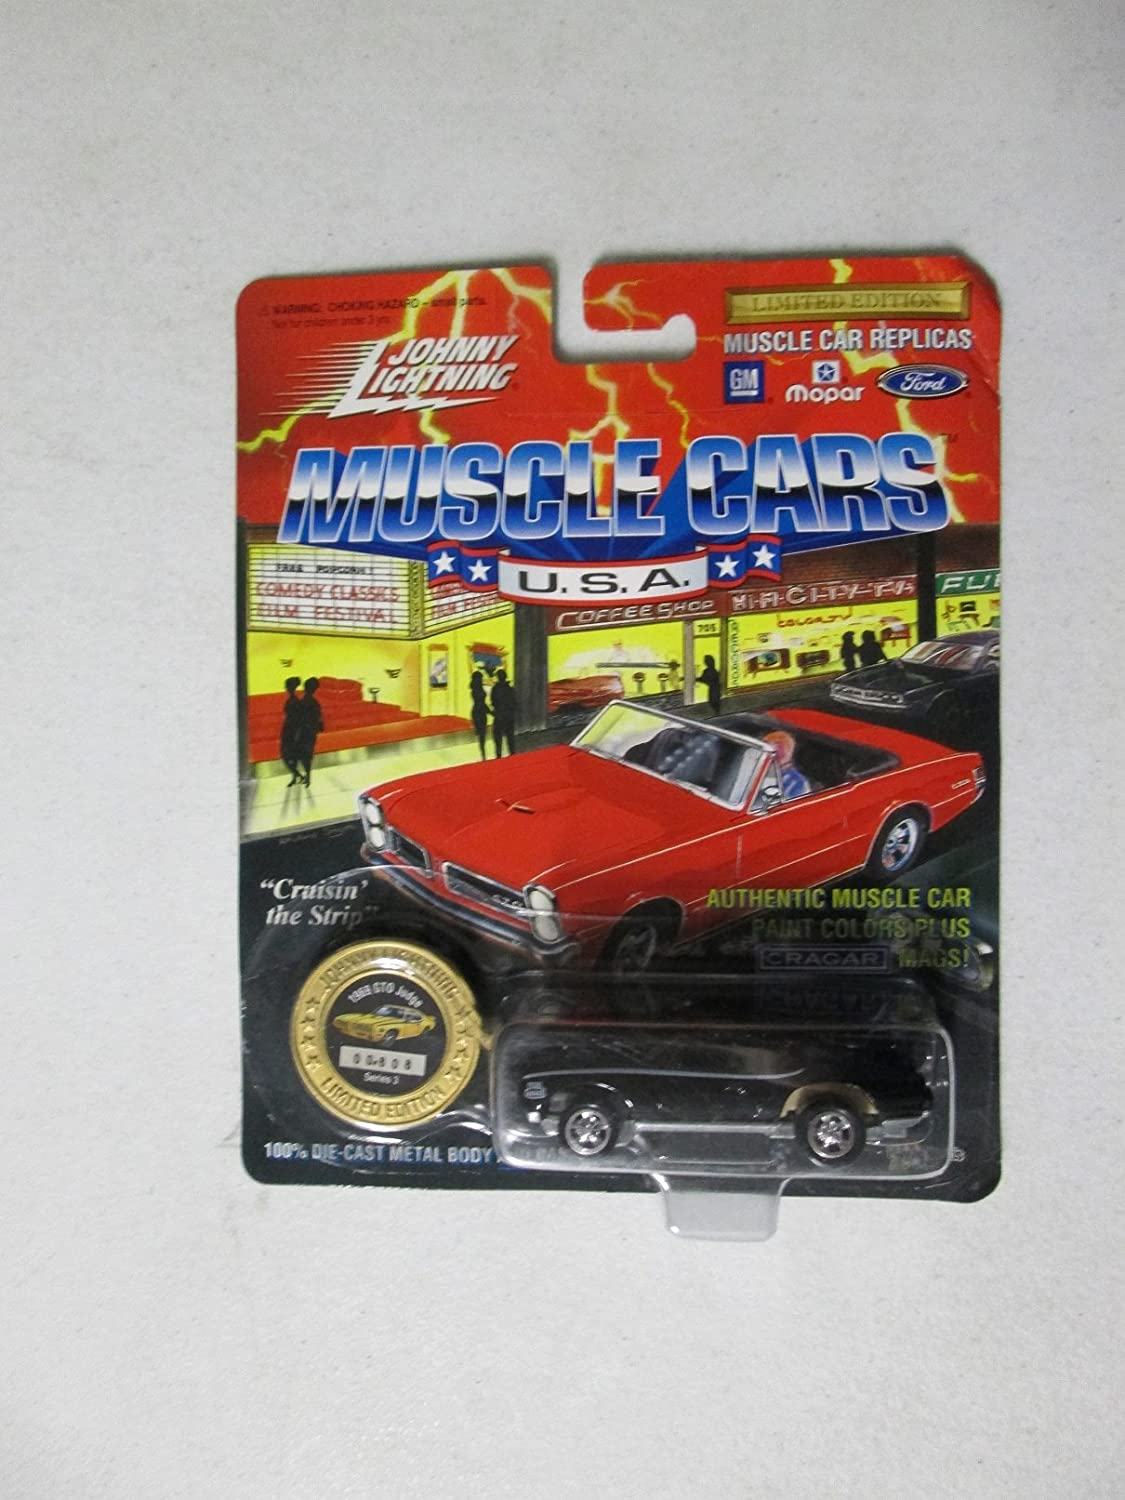 Johnny Lightning Muscle Cars USA 1969 GTO Judge 1 64 Black